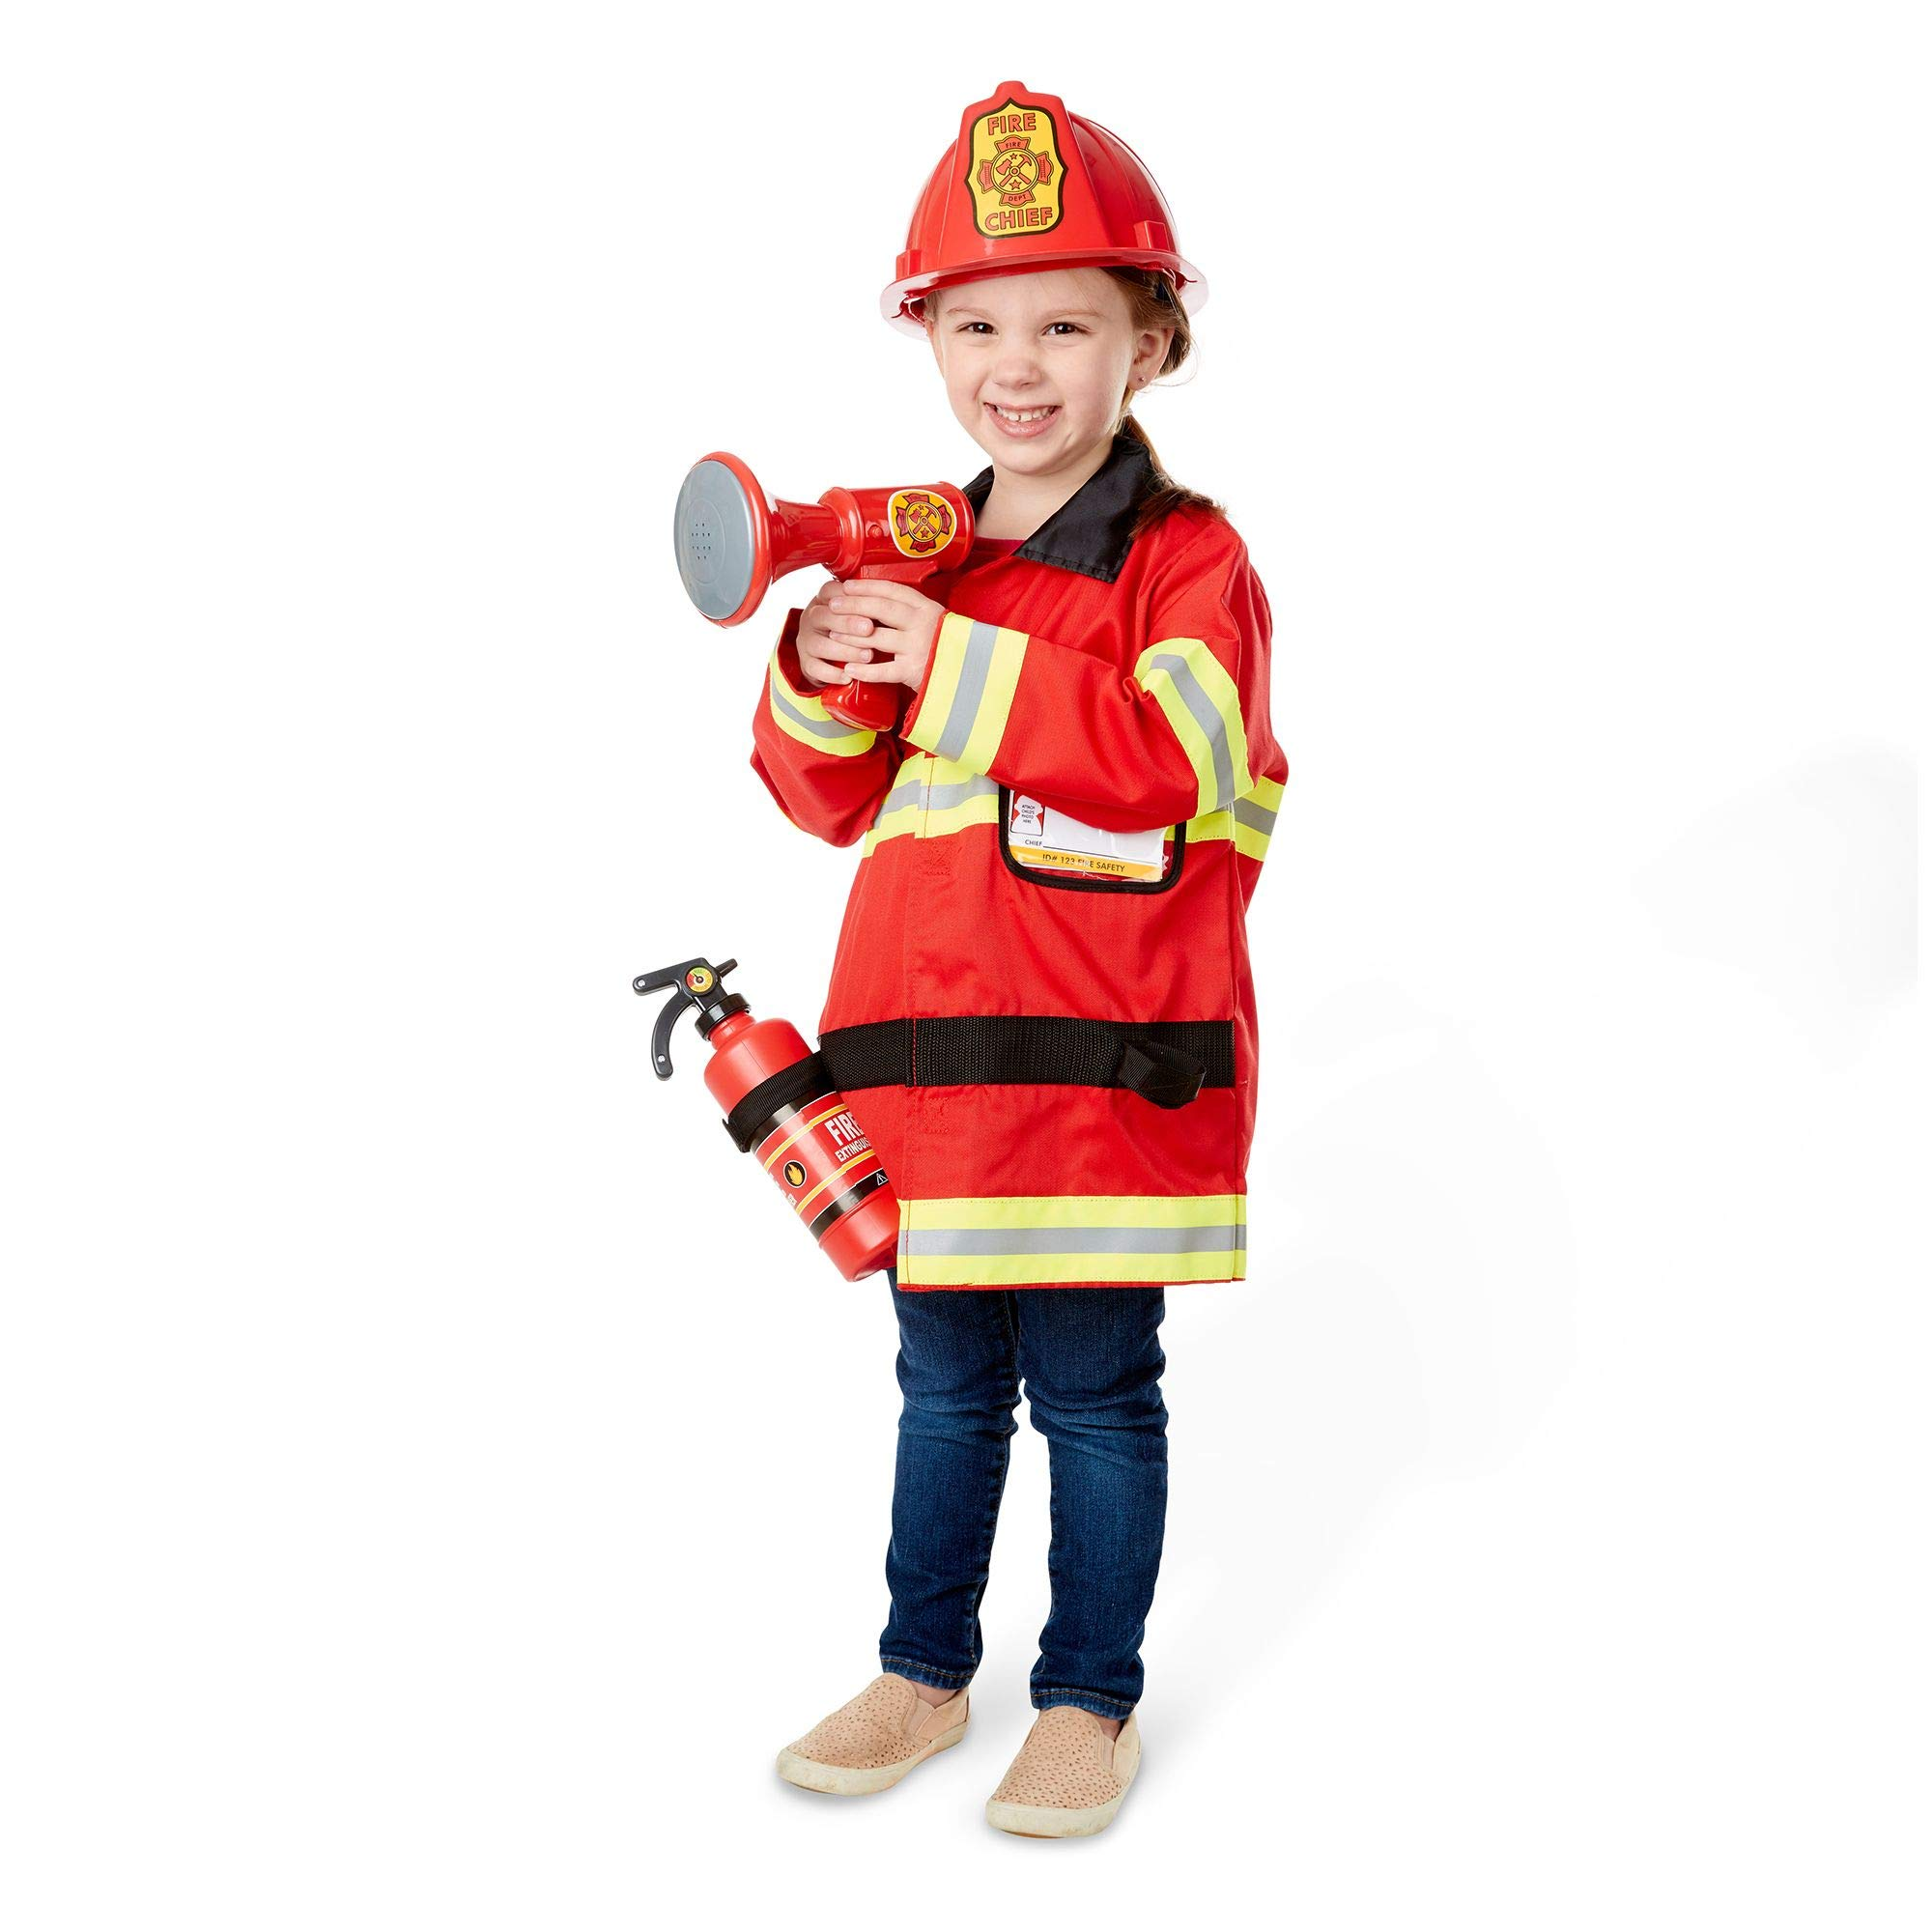 Melissa & Doug Fire Chief Role Play Costume Set, Pretend Play, Frustration-Free Packaging, Bright Red, 17.5'' H x 24'' W x 2'' L by Melissa & Doug (Image #5)